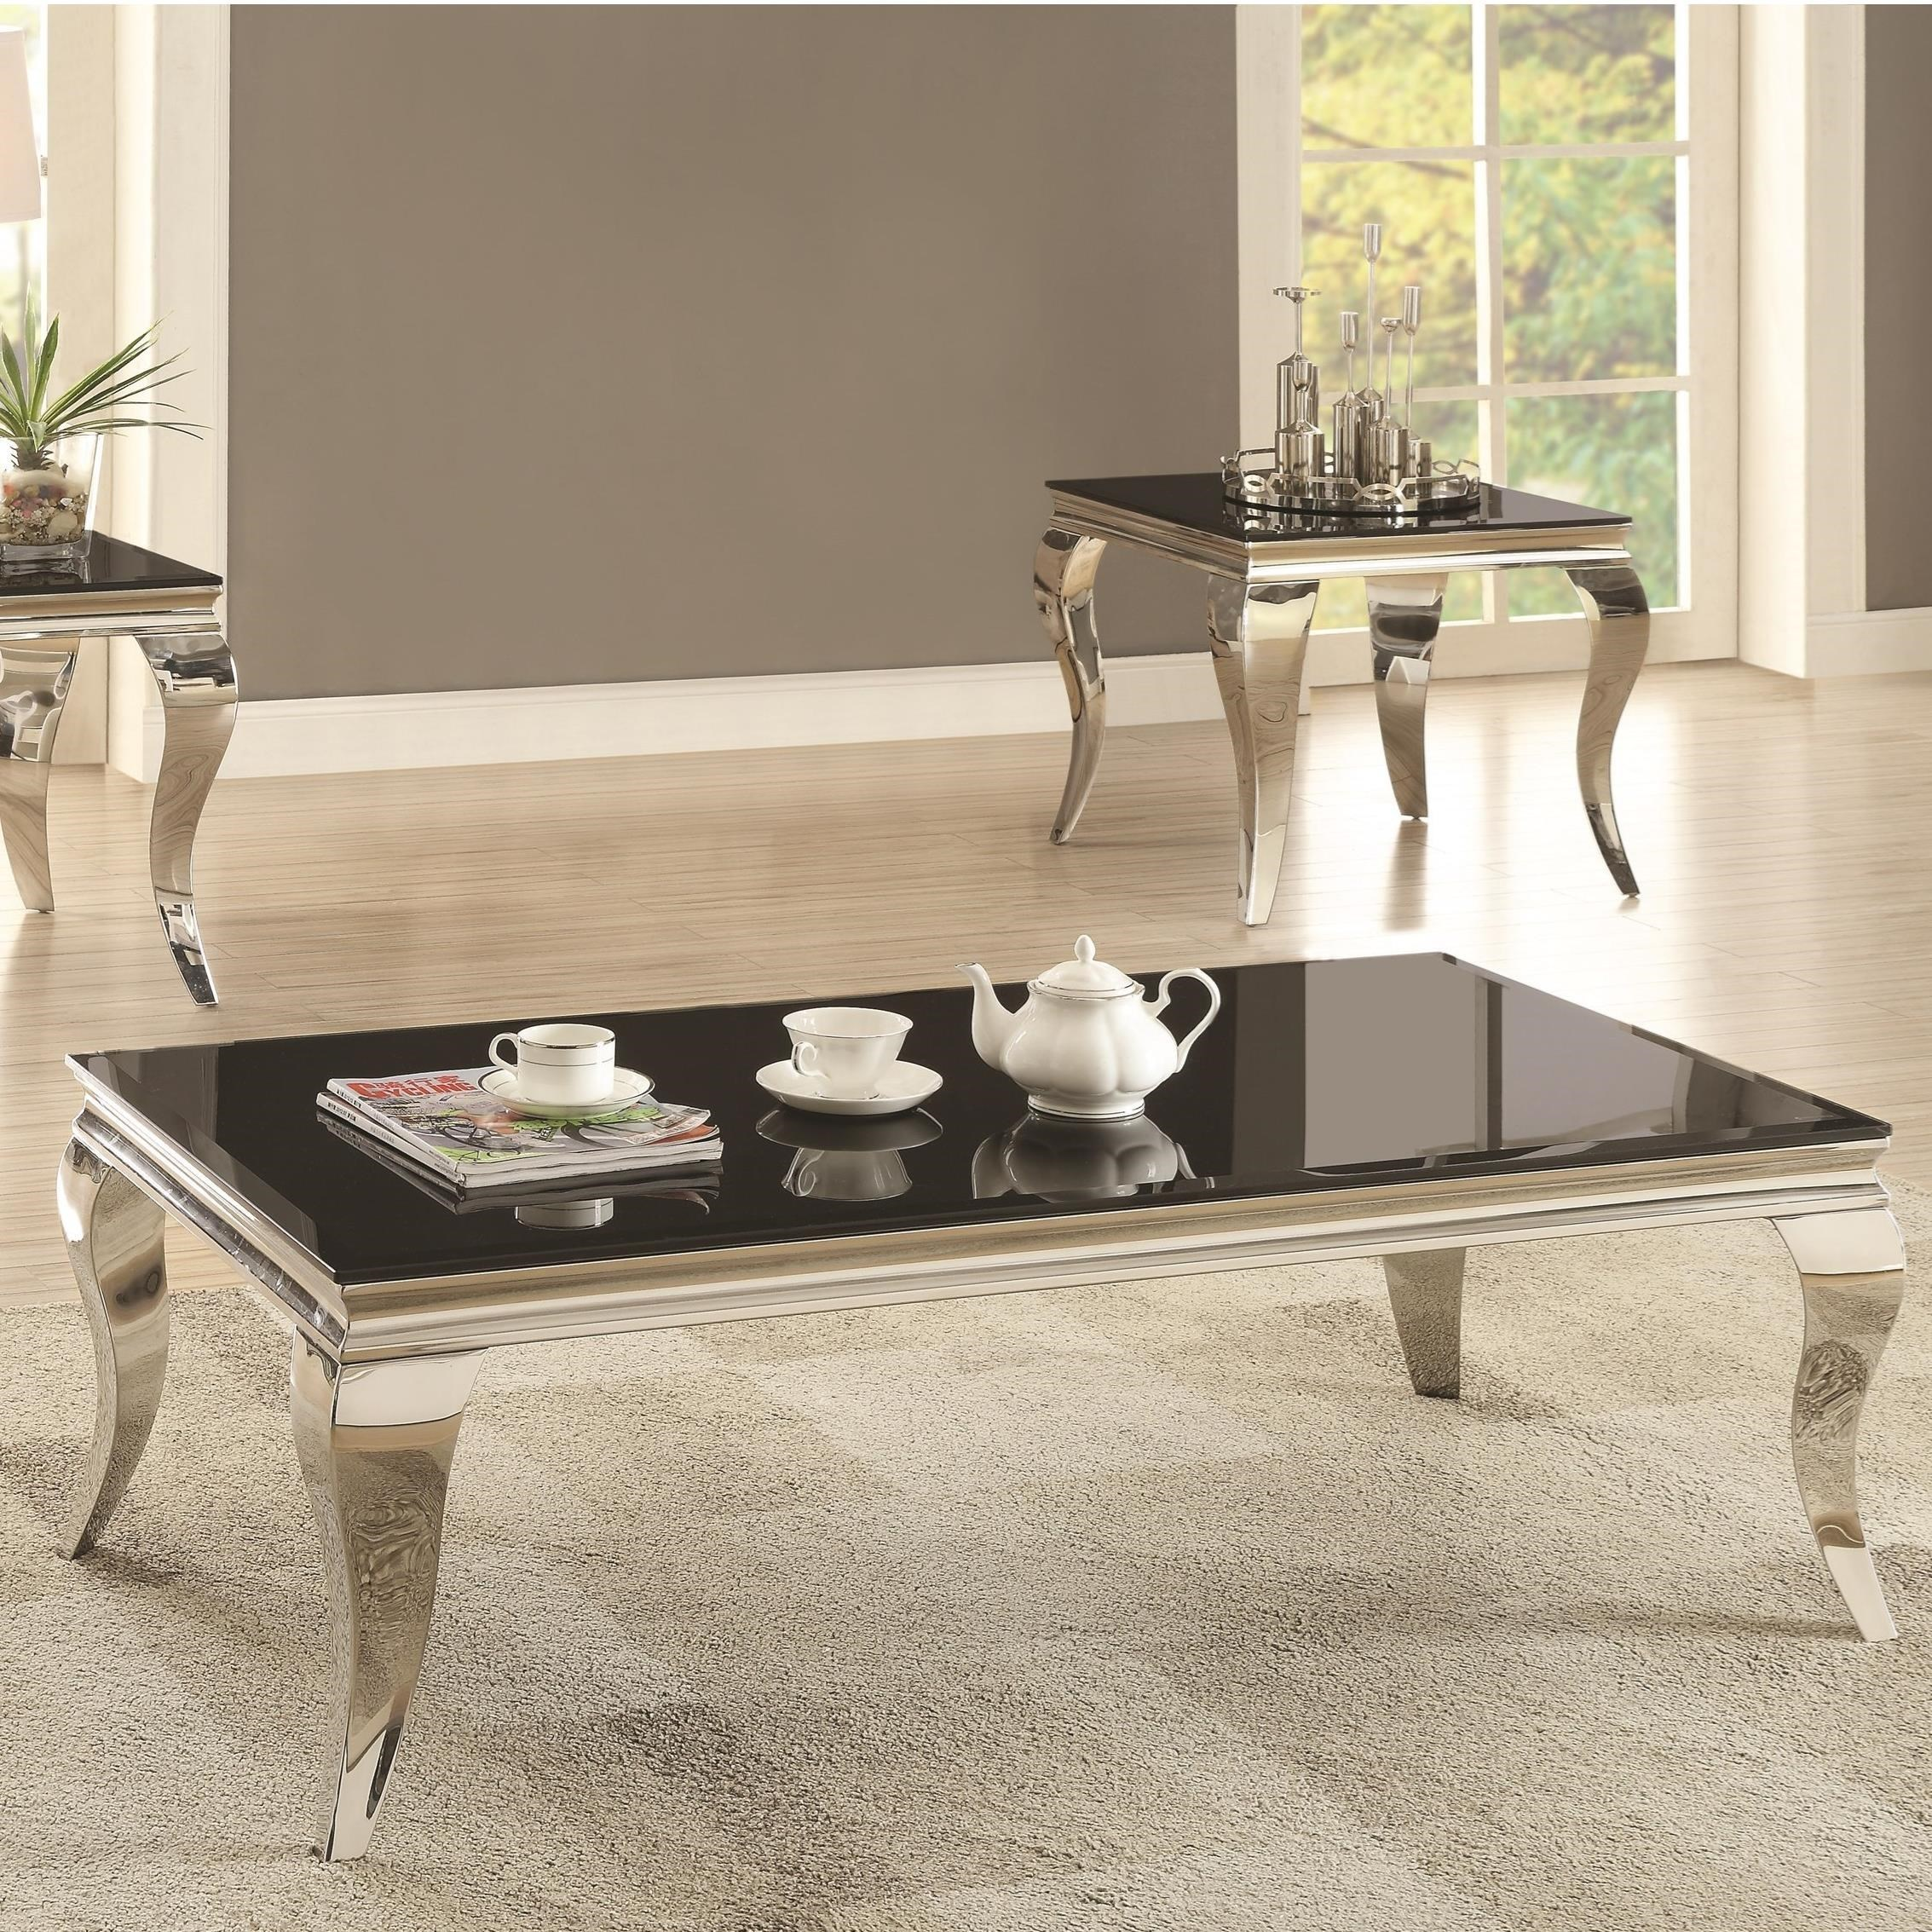 705010 Coffee Table by Coaster at Corner Furniture